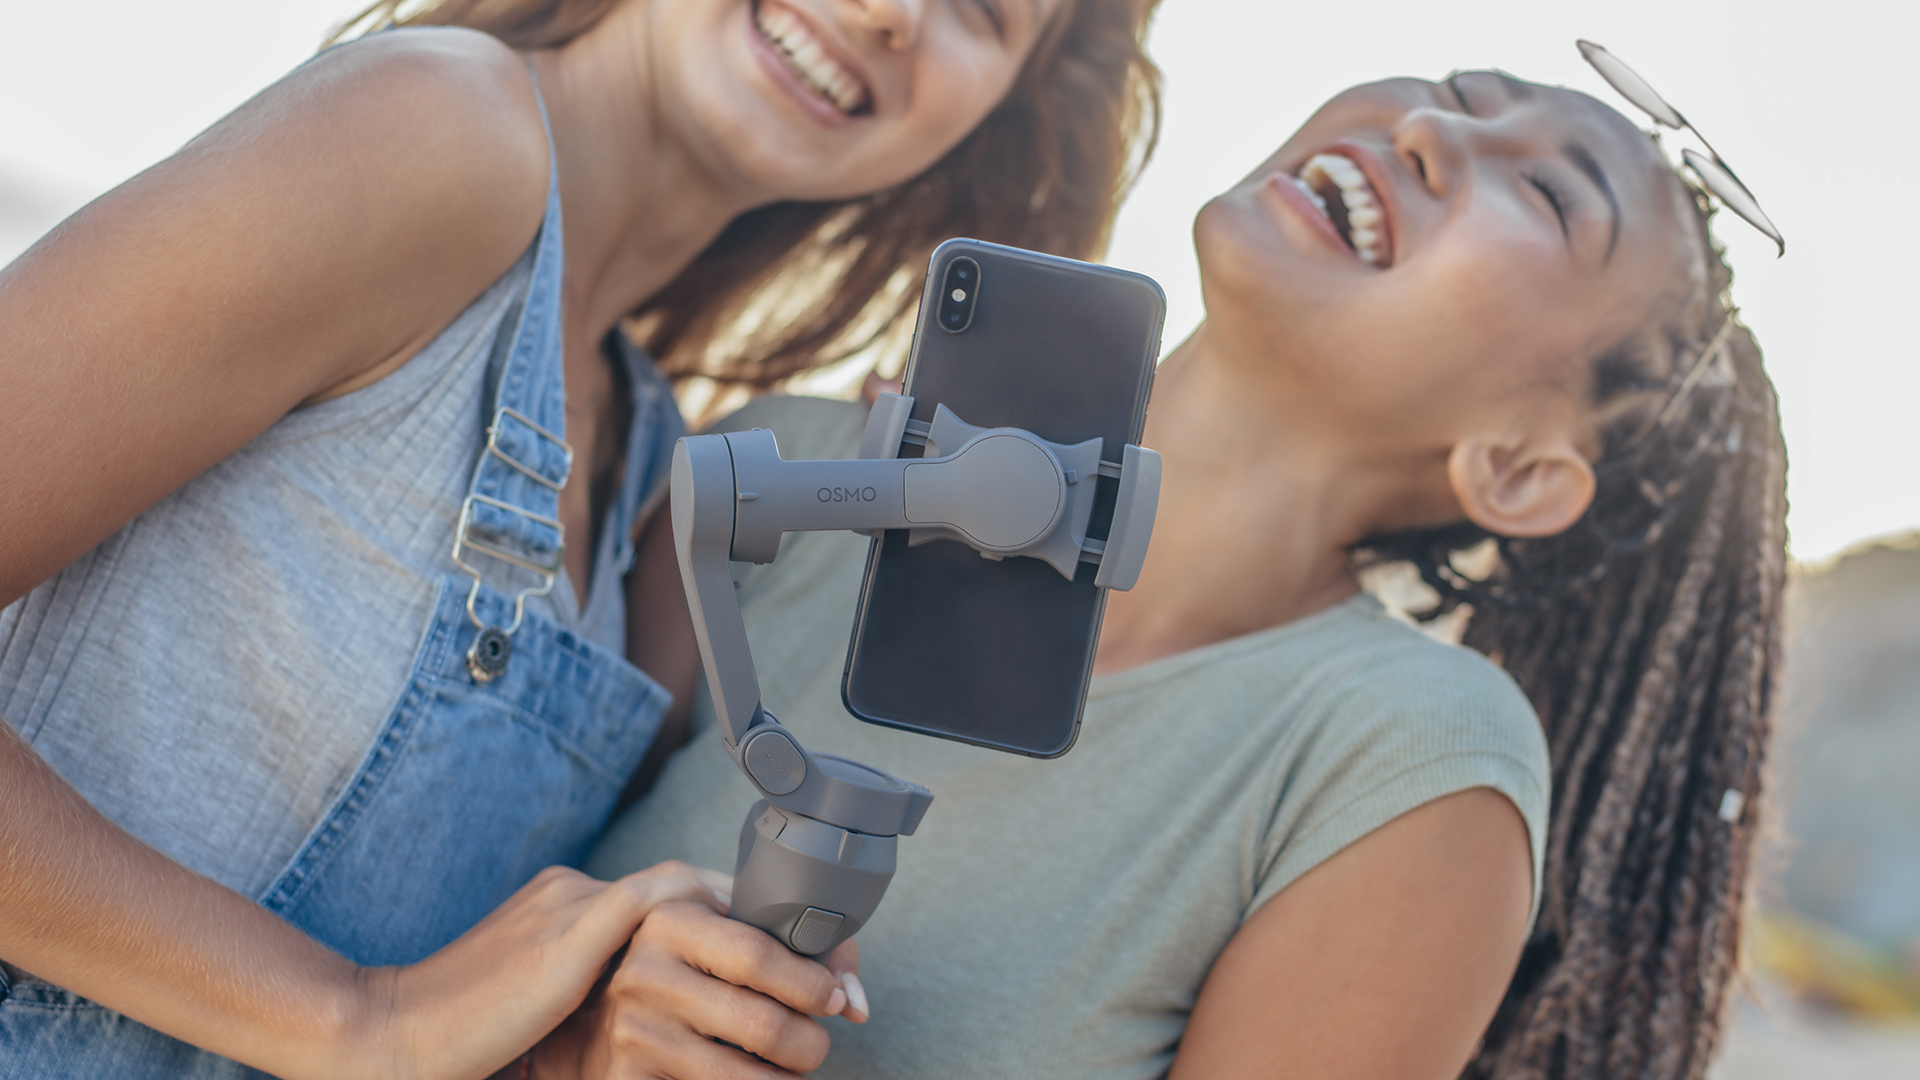 fcnEQLr7QKpHeDQtuFcV6U - DJI strikes back against its smartphone-steadying rivals with the clever Osmo Mobile 3